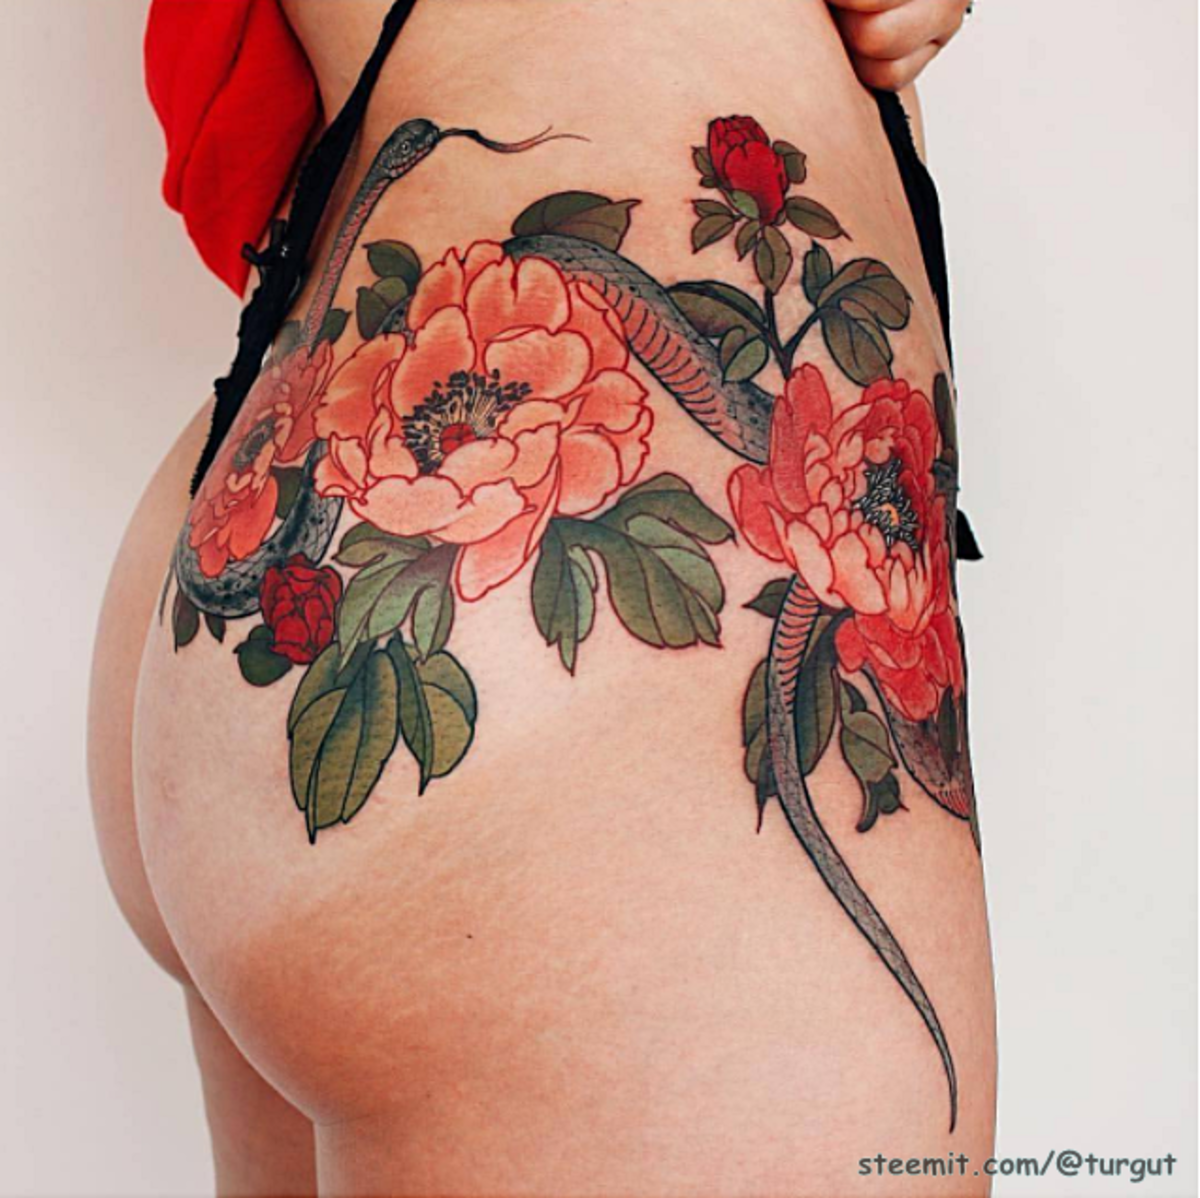 18 Best and Worst Butt Tattoos on Women - Tattoo Ideas, Artists and ...